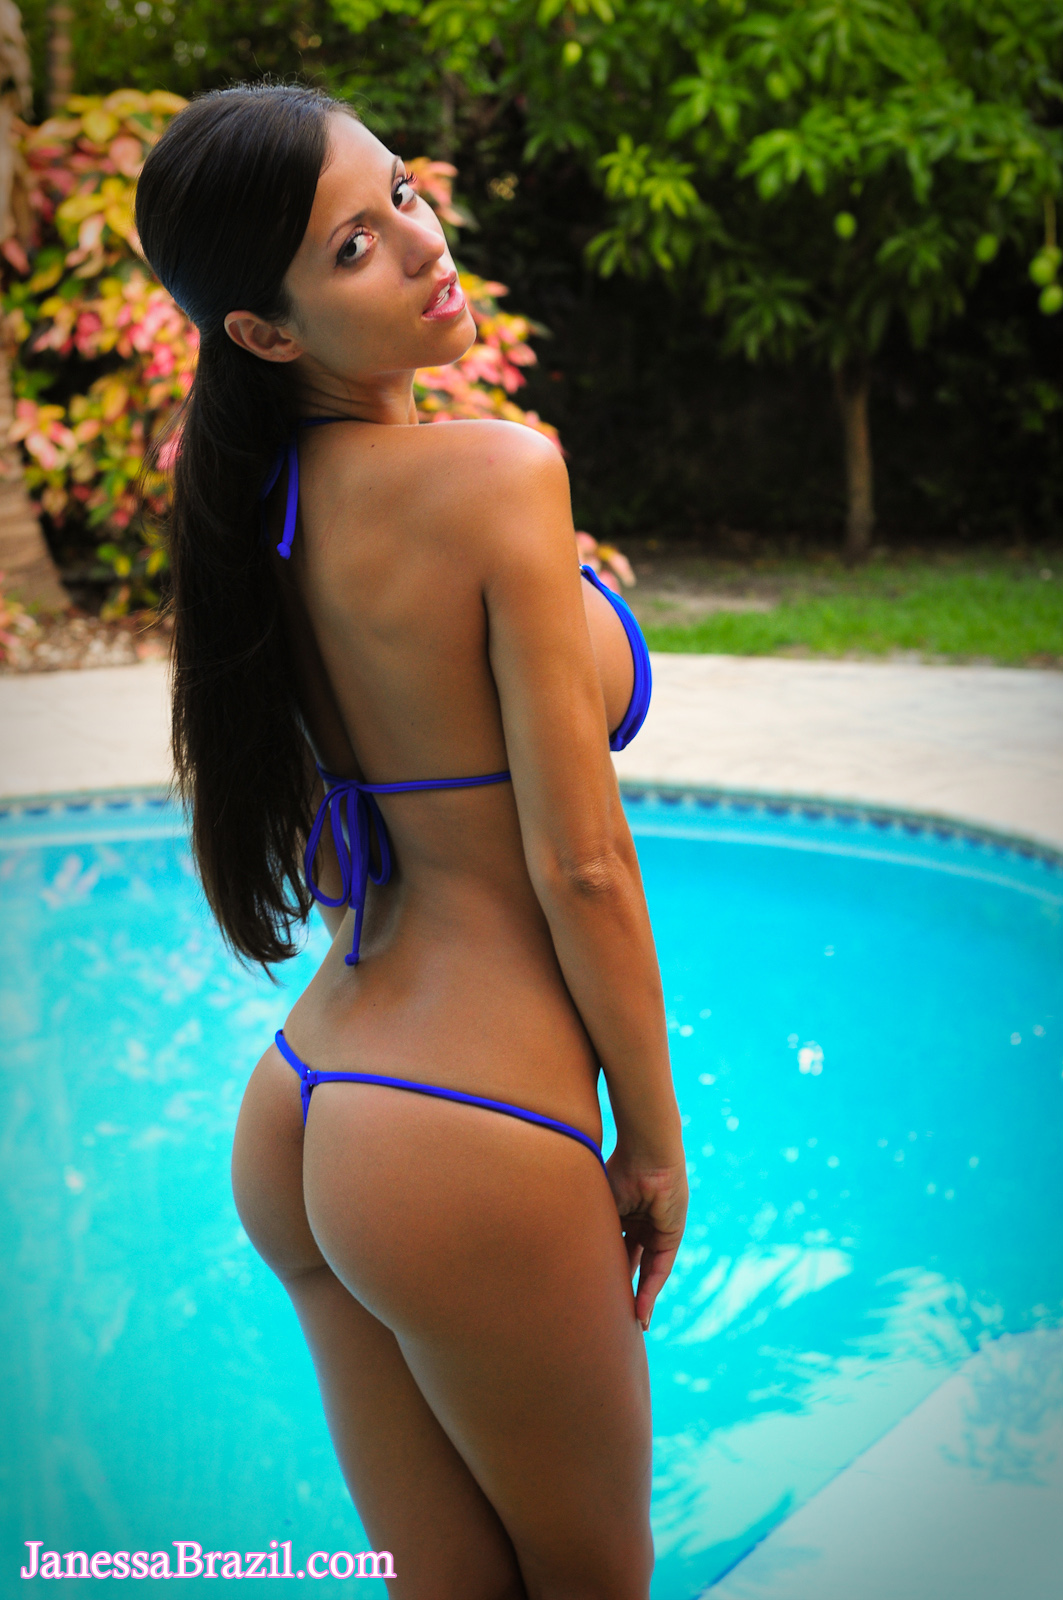 Hottie cools off by the pool - 3 part 9